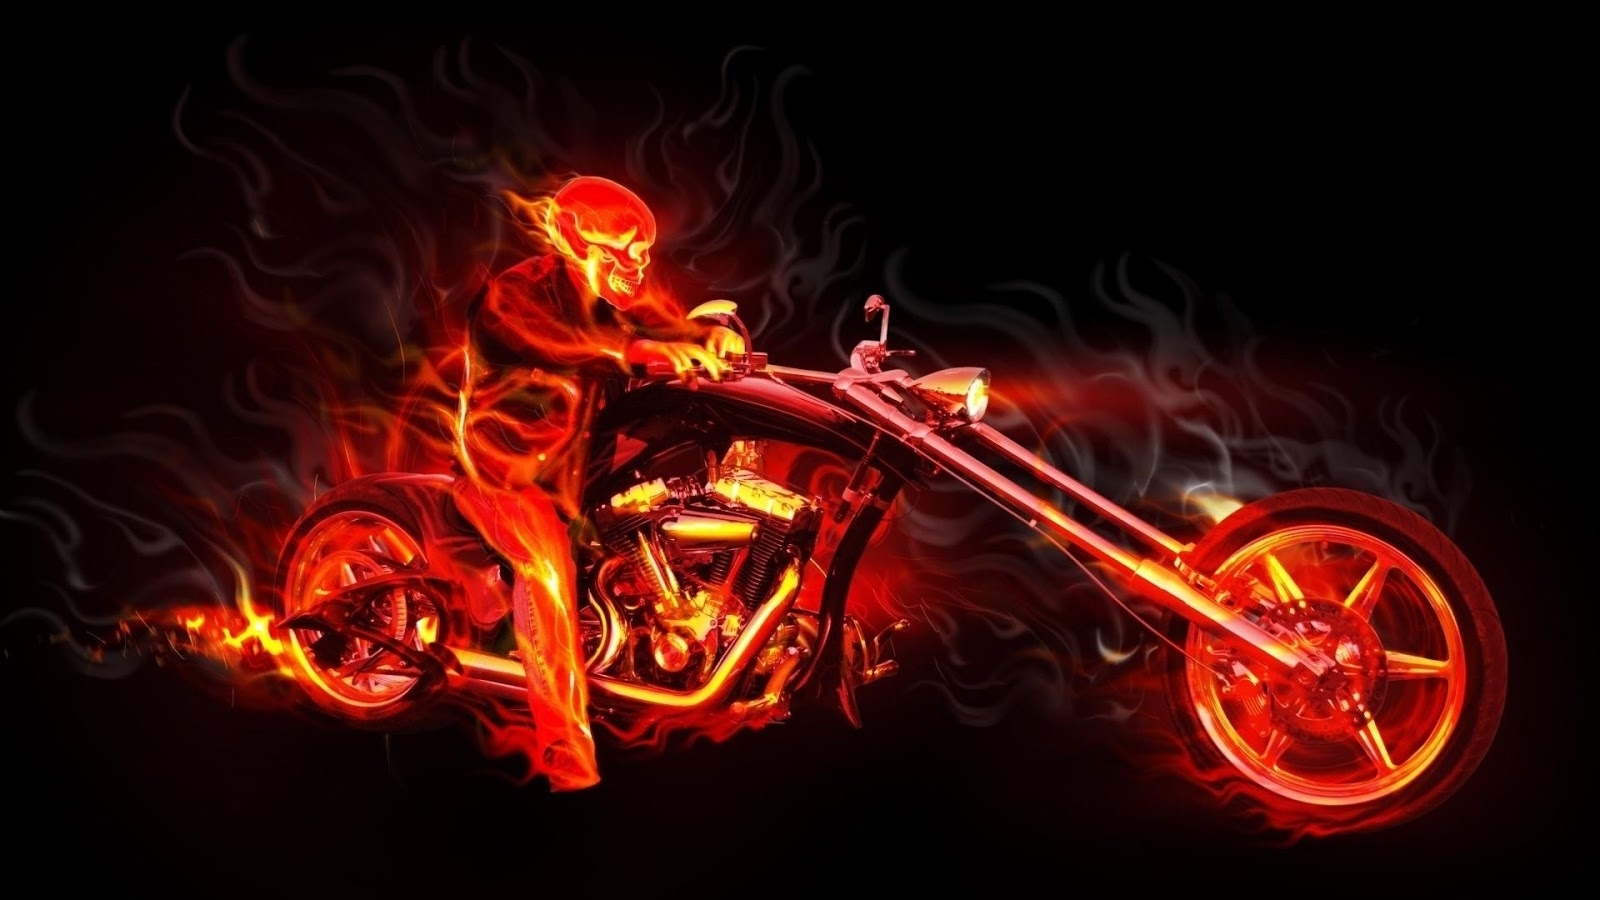 blue and red flaming skulls | file name : motorcycle skull flames